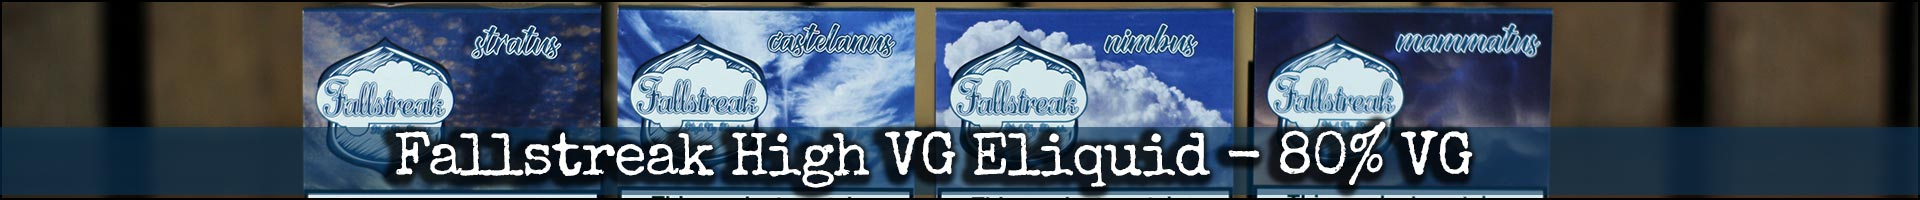 Fallstreak Super Smooth High VG Eliquid